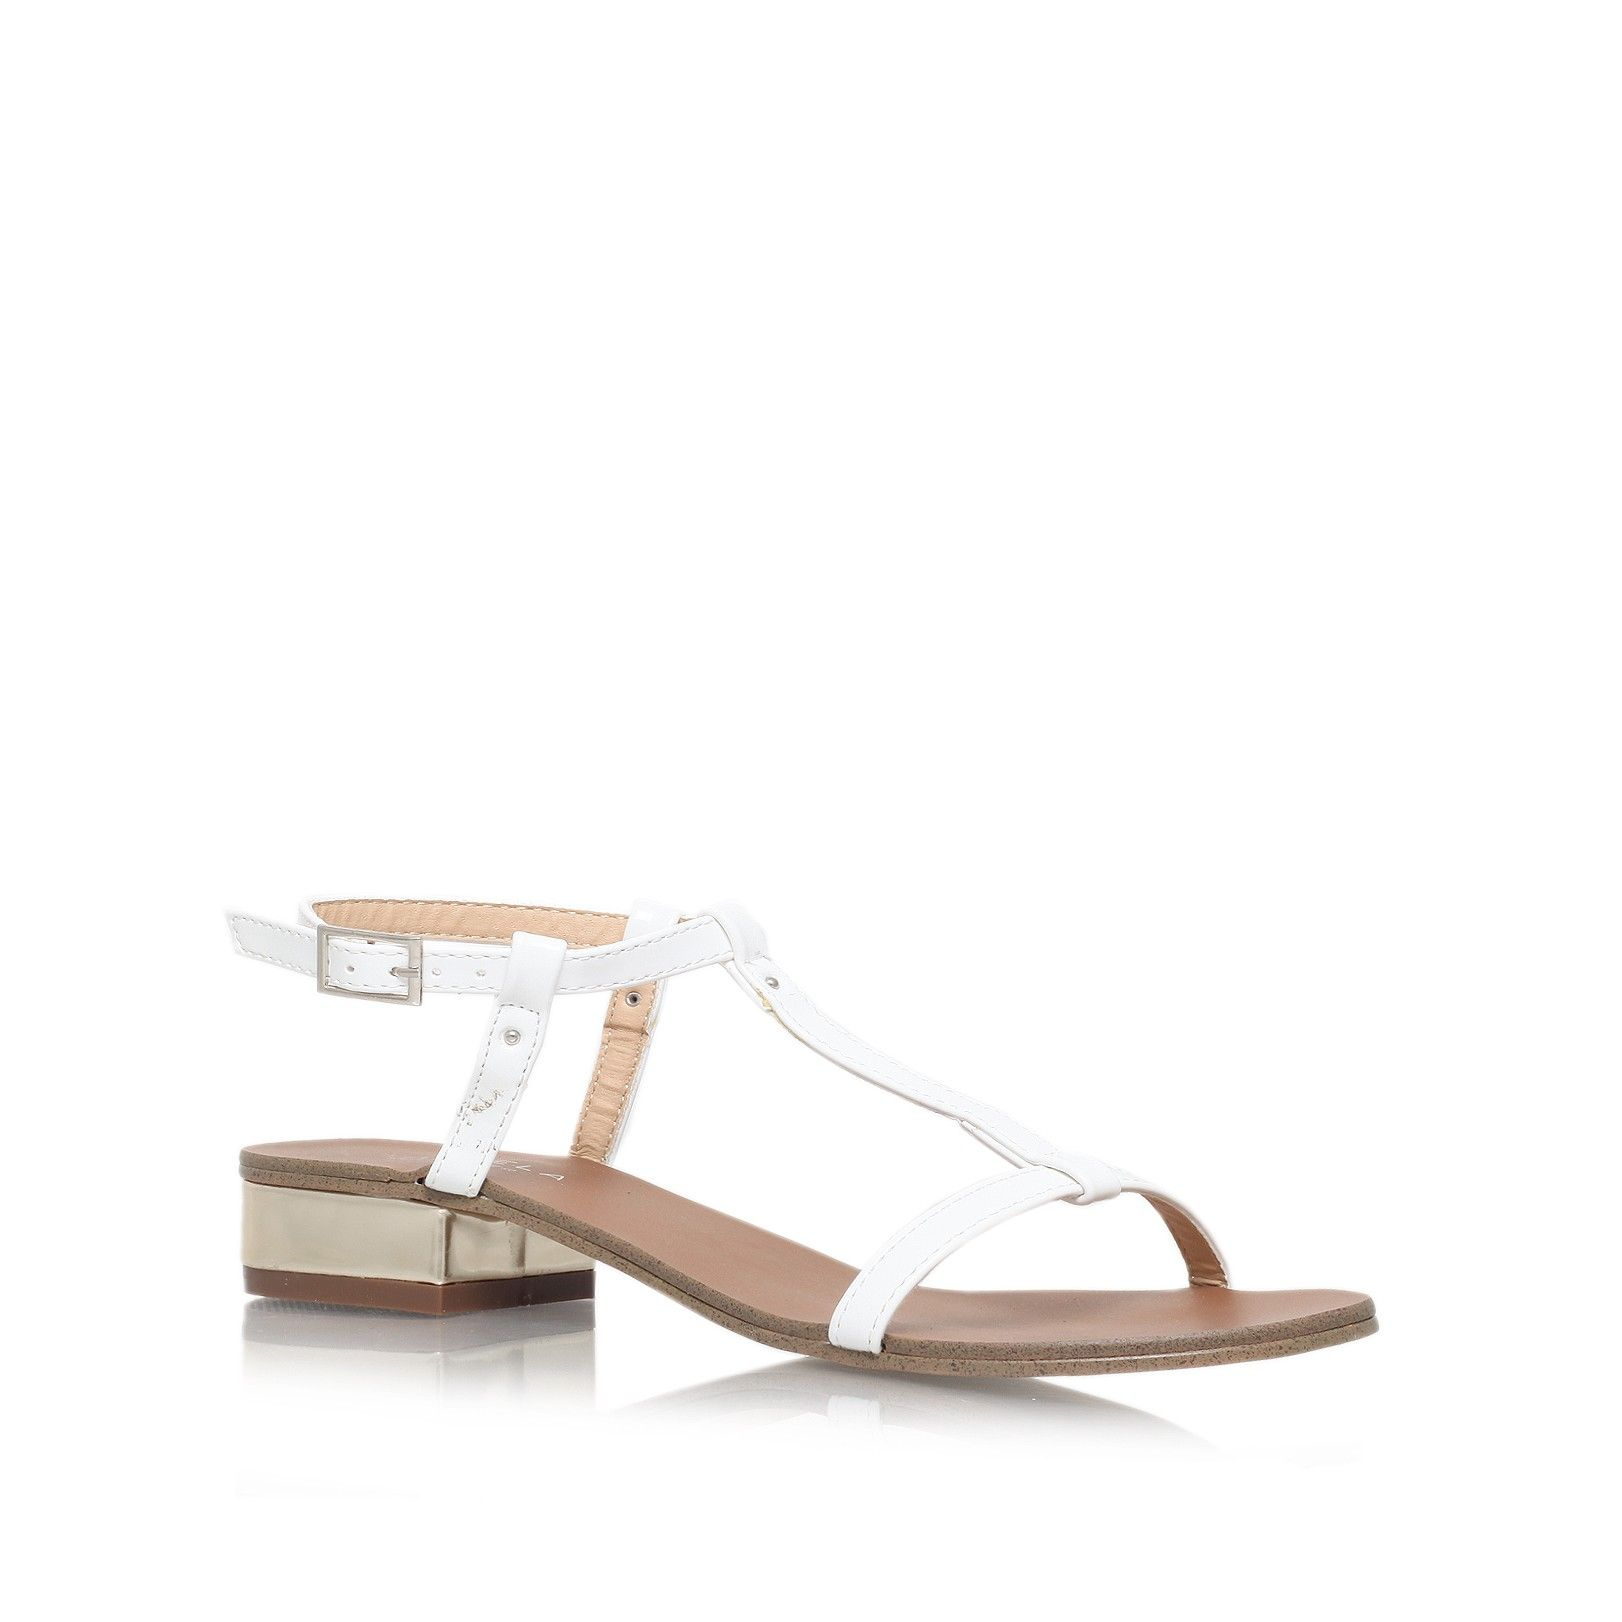 c27f34ba77e bounty white low heel sandals from Carvela Kurt Geiger